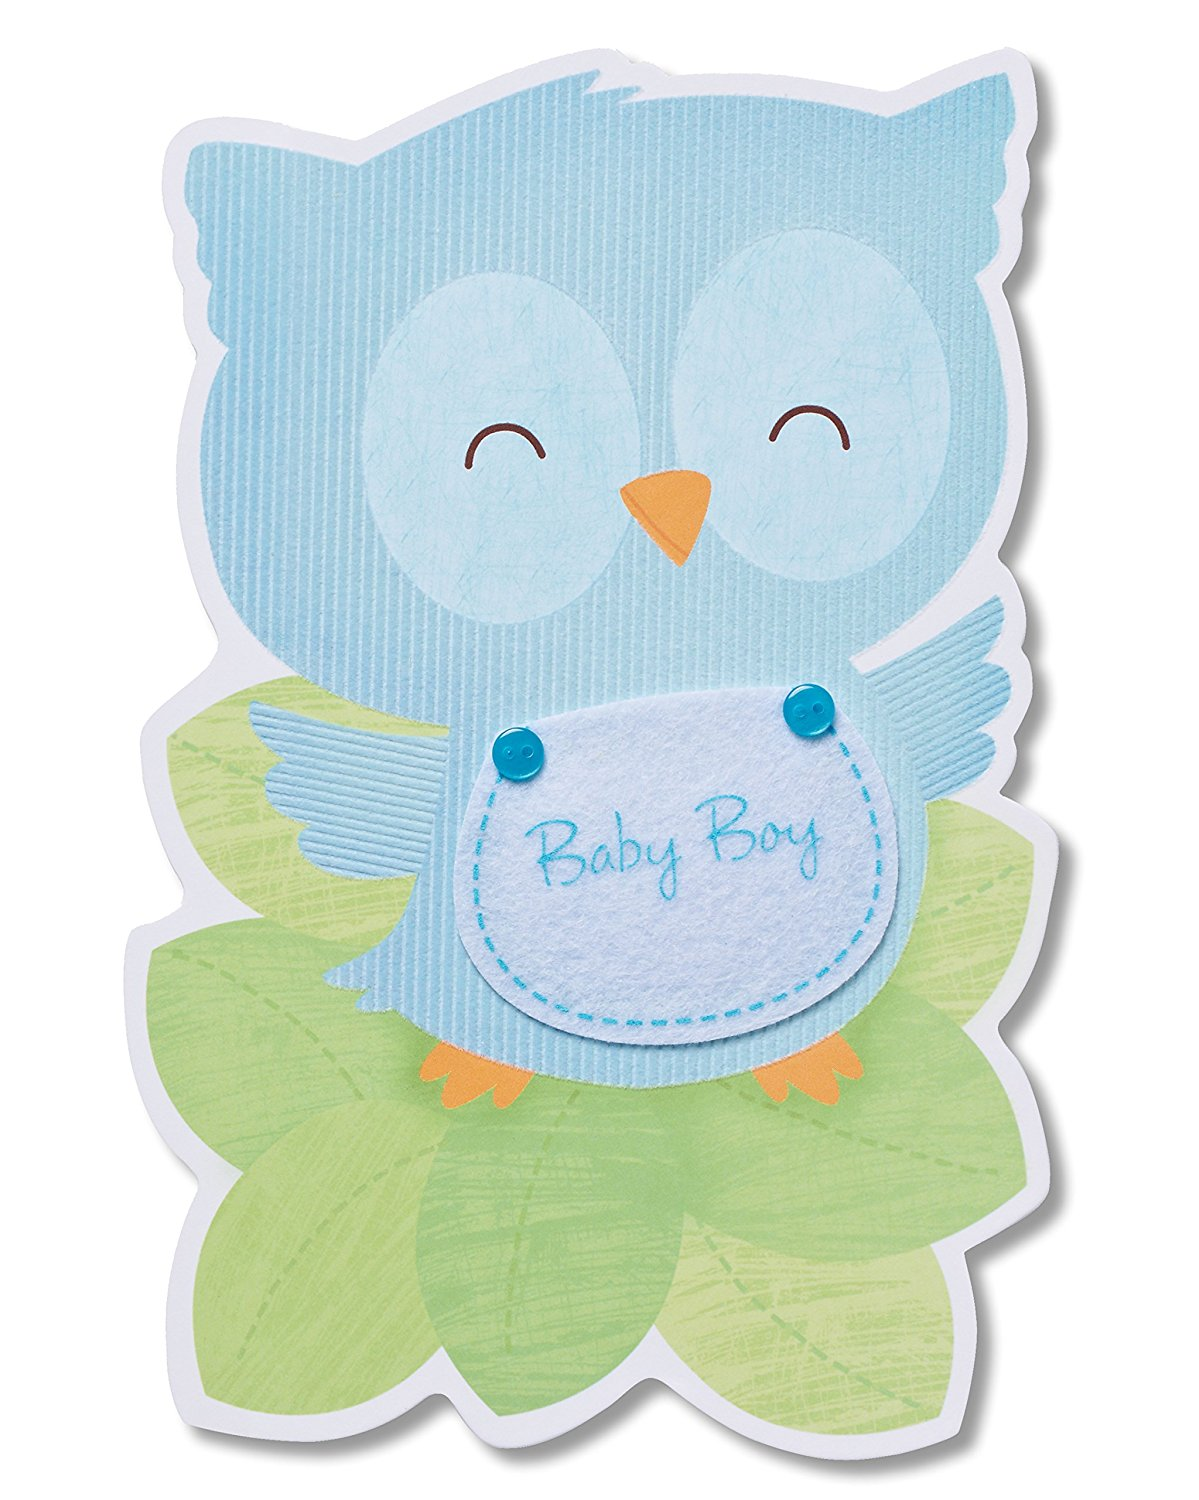 Cheap Card For Baby Boy Find Card For Baby Boy Deals On Line At